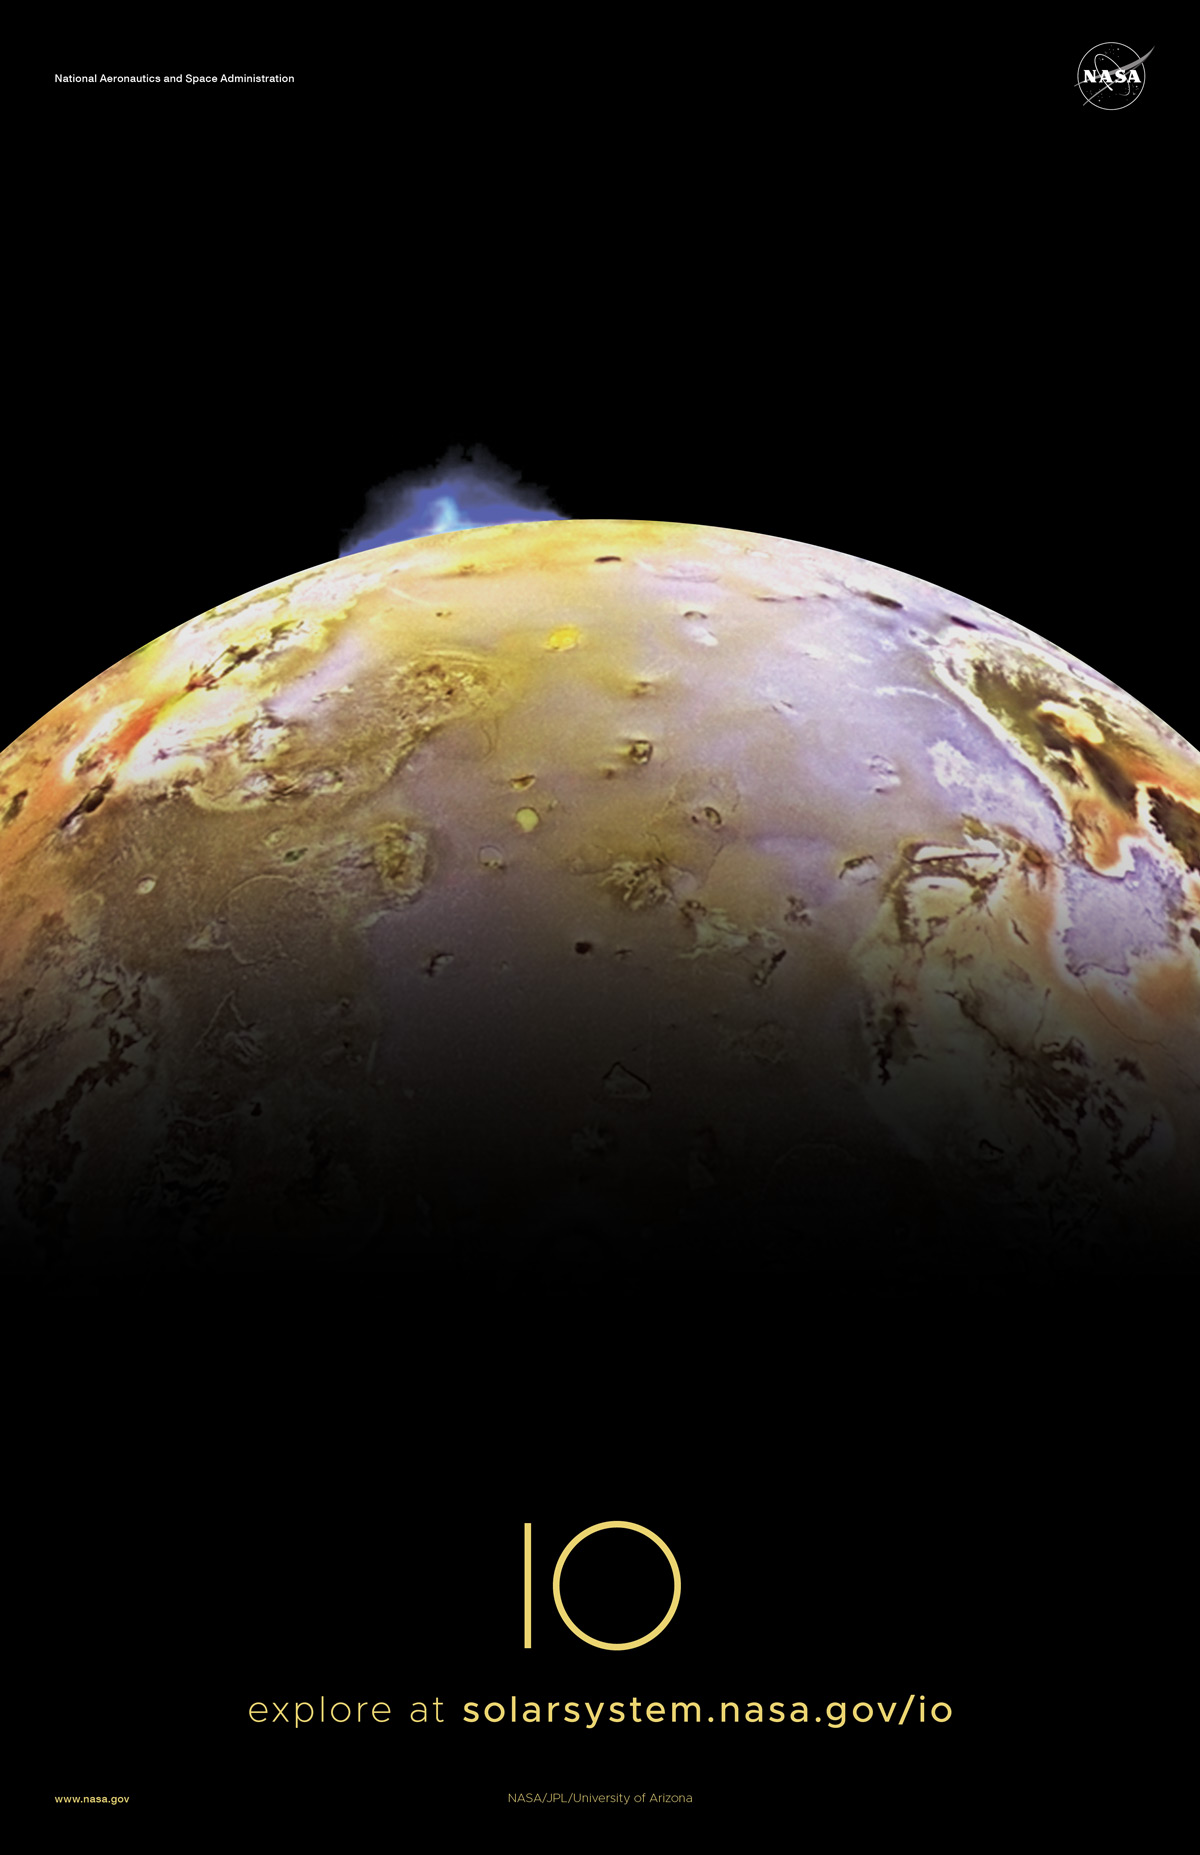 Sunlit half of Io with a volcano erupting into space.